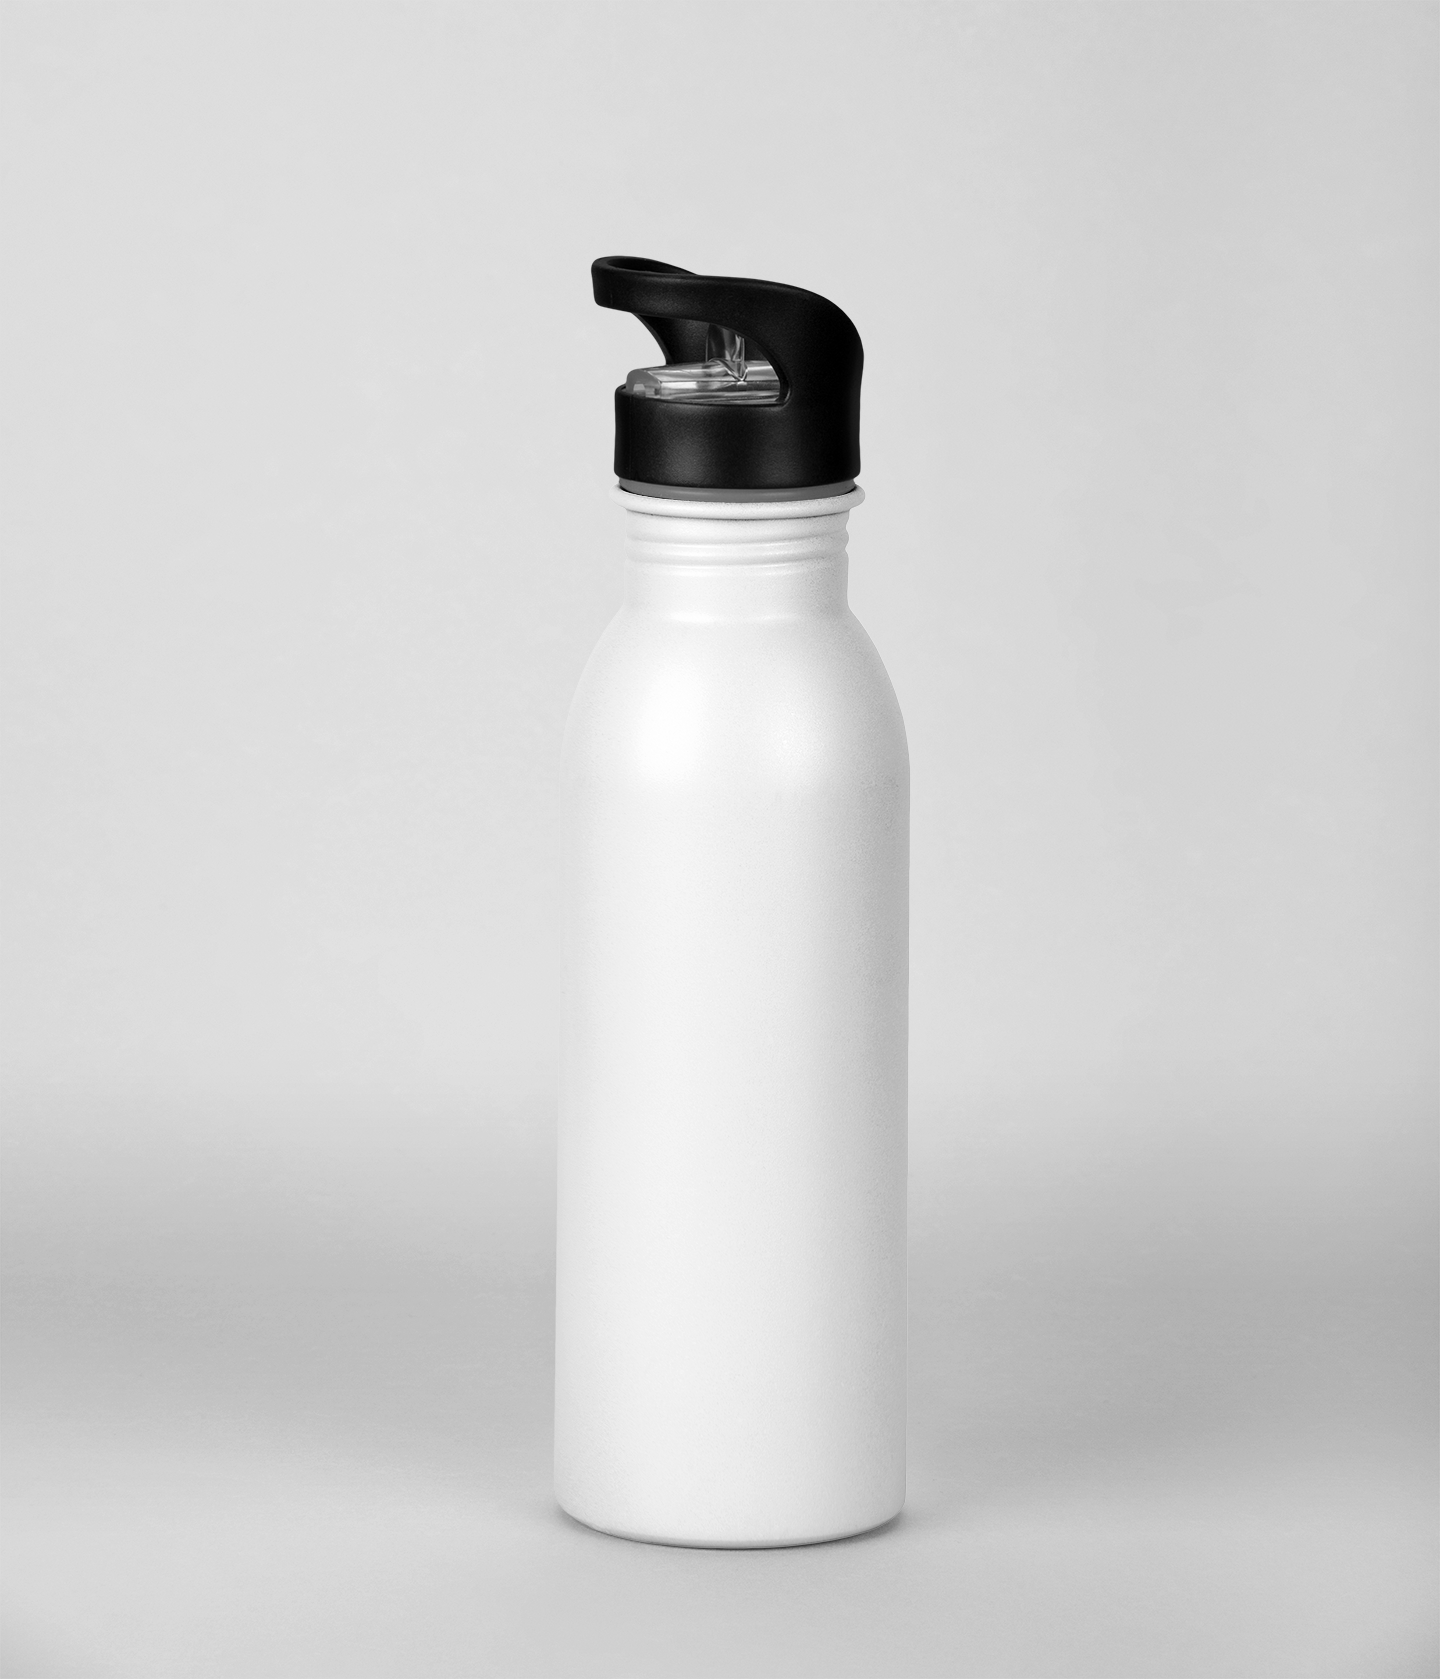 aluminum-bottle-mockup-24443